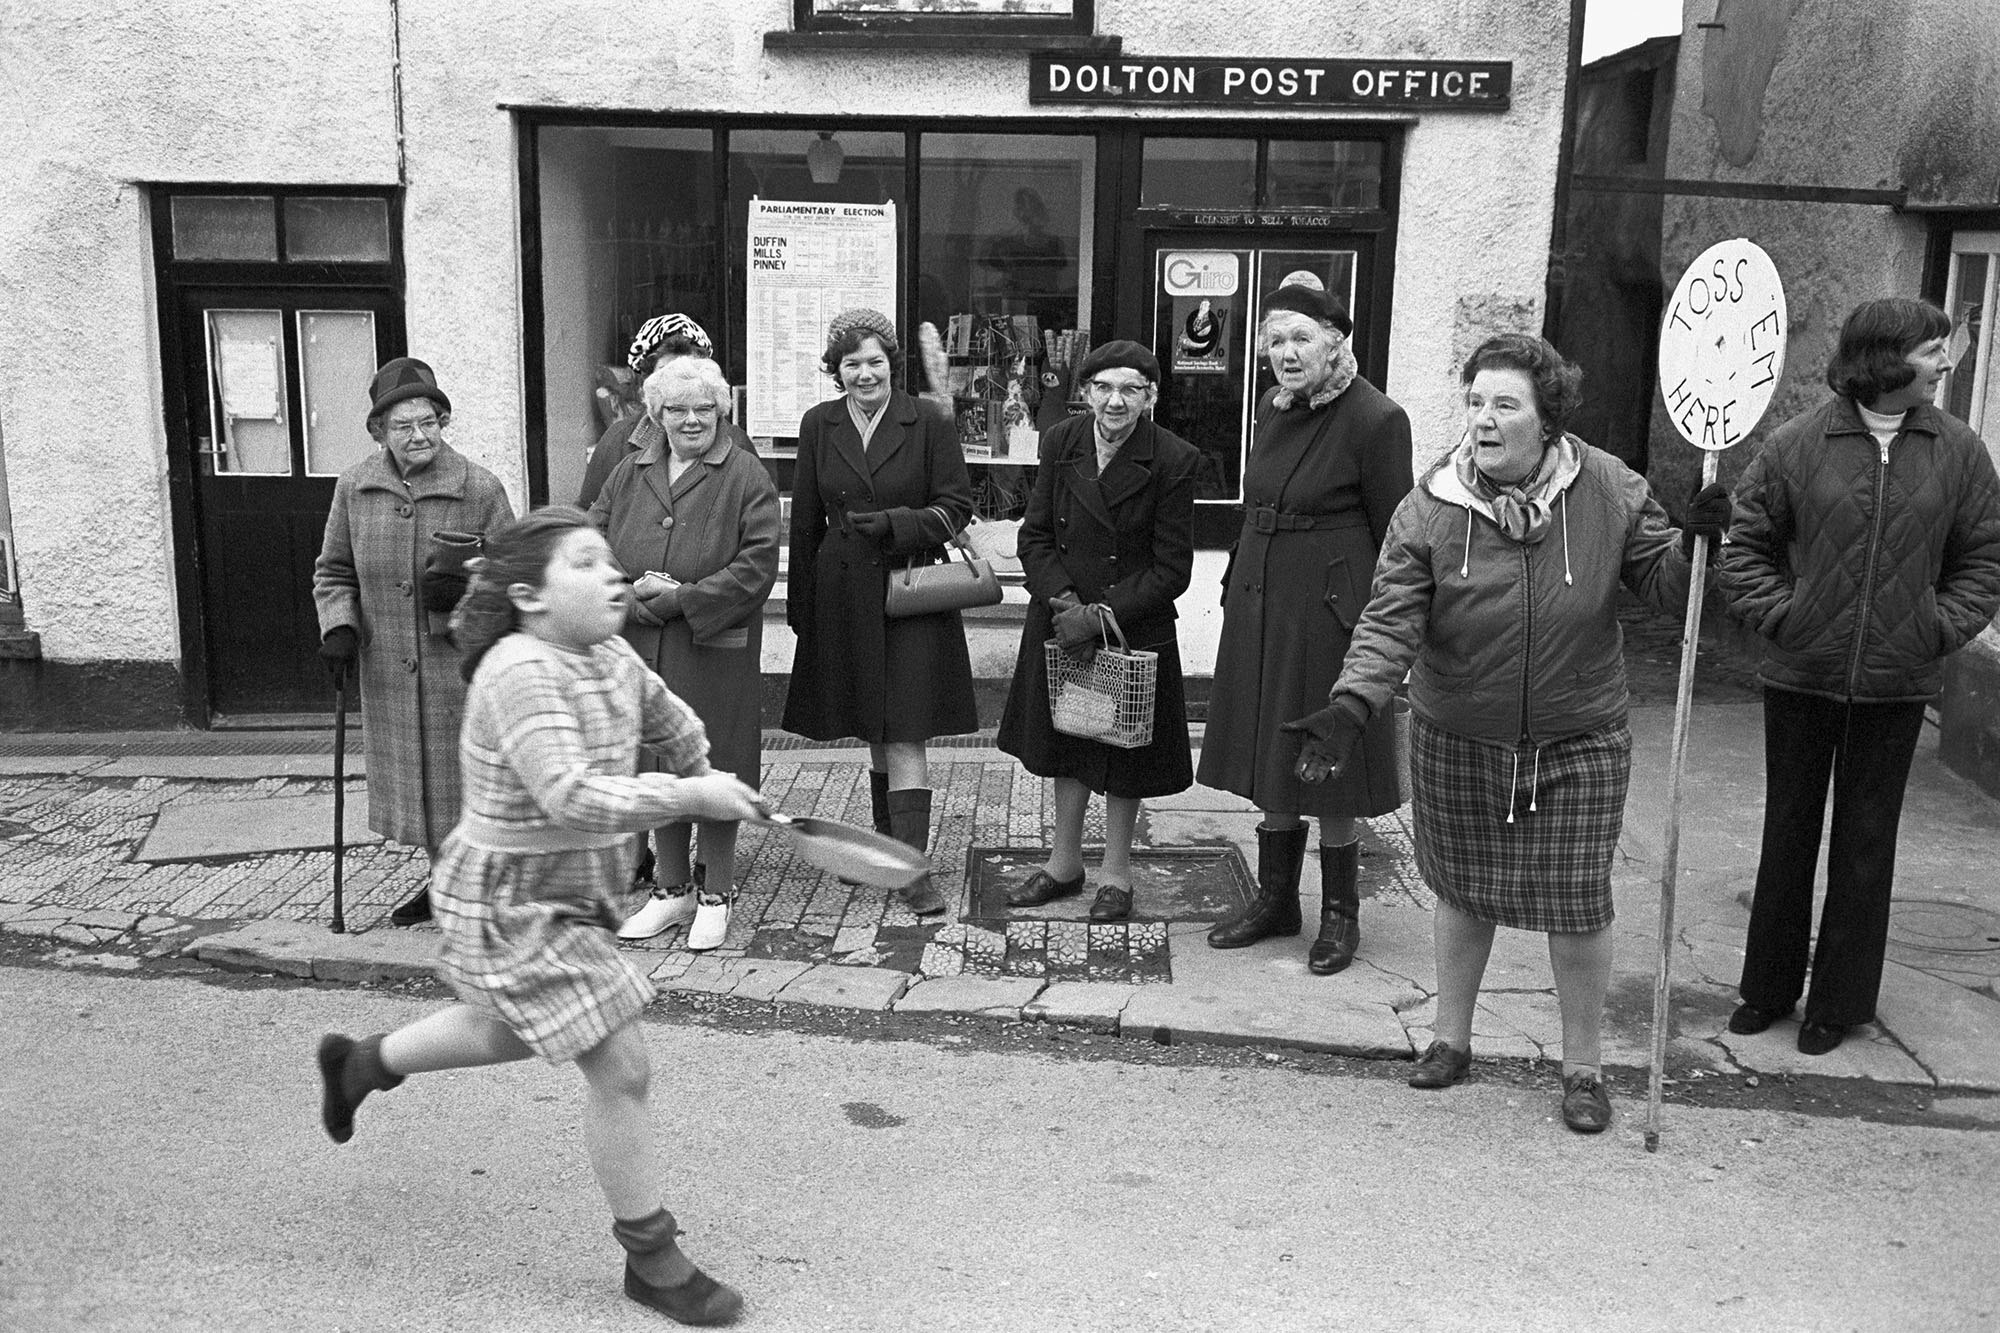 Pancake race, runner and spectators outside Post Office.<br /> [Spectators watching Diane Hiscock running in the pancake race outside Dolton Post Office. A woman with a 'Toss Em Here' sign is also outside the Post Office.]